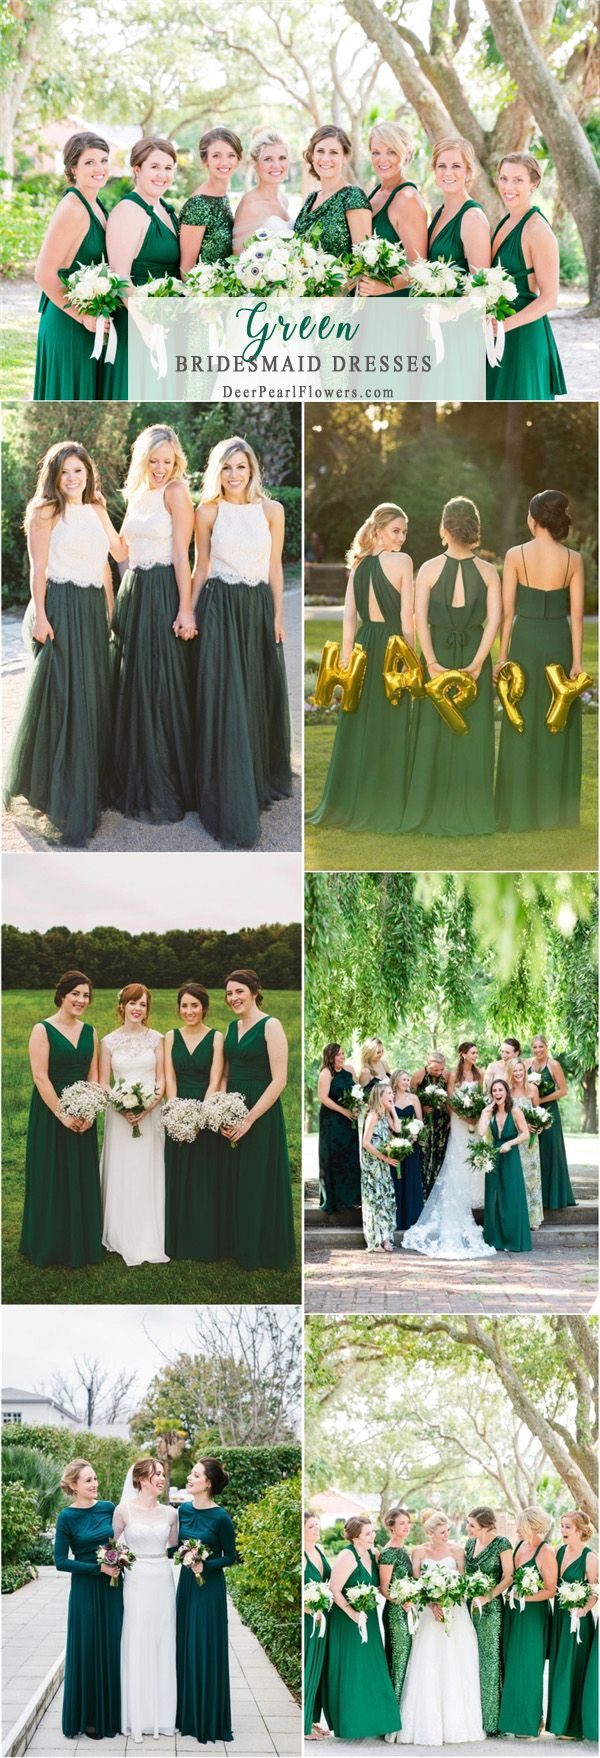 Top bridesmaid dress trends for dress ideas greenery and